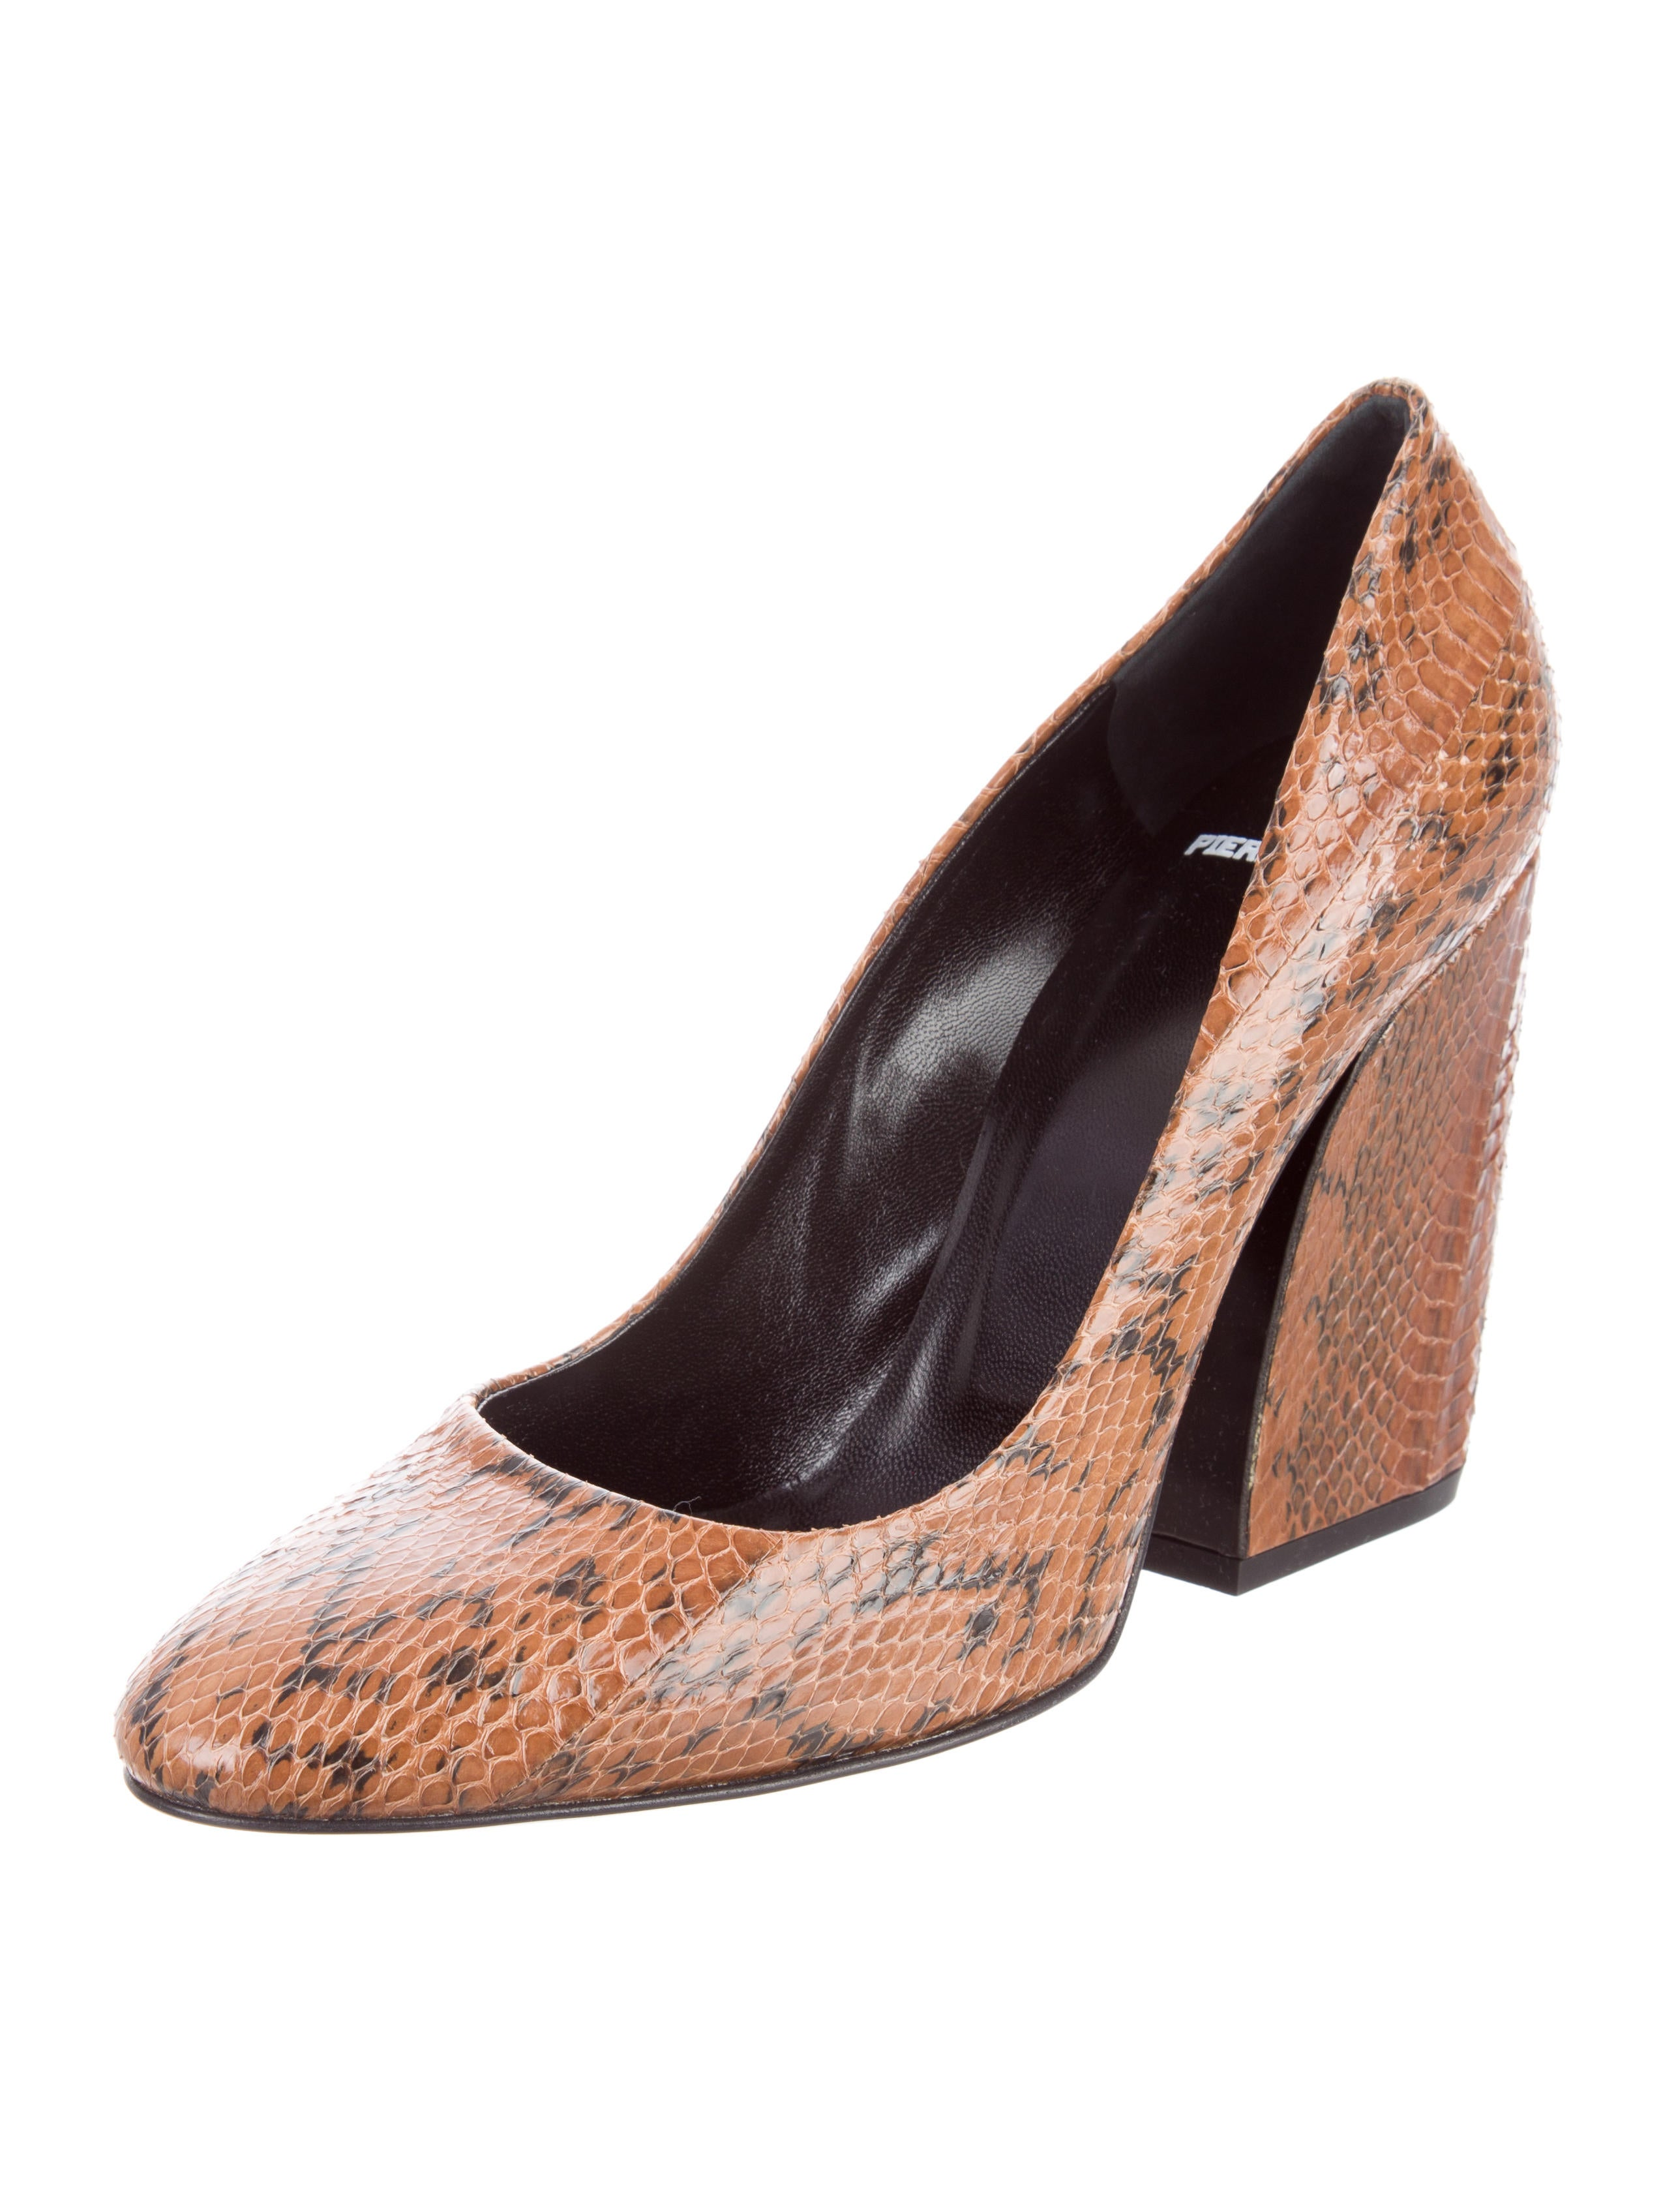 Pierre Hardy Round-Toe Python Pumps w/ Tags sale fast delivery cheap buy sale excellent wbFEp